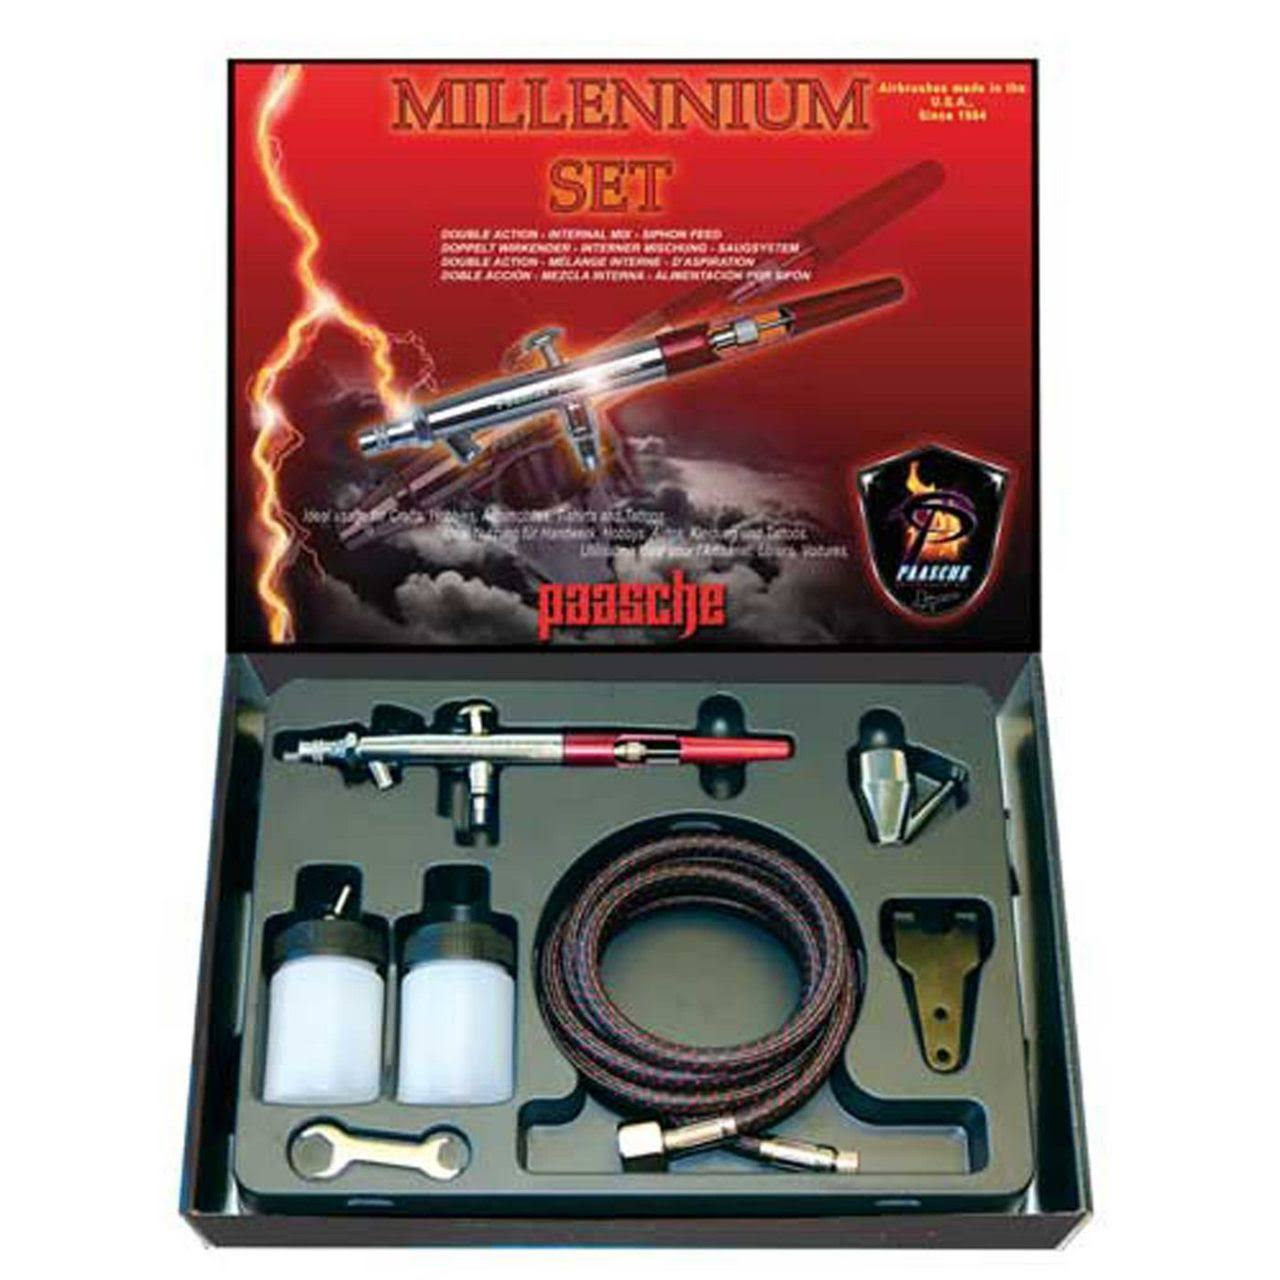 Paasche Mil-Set Double Action Siphon Feed Airbrush Set